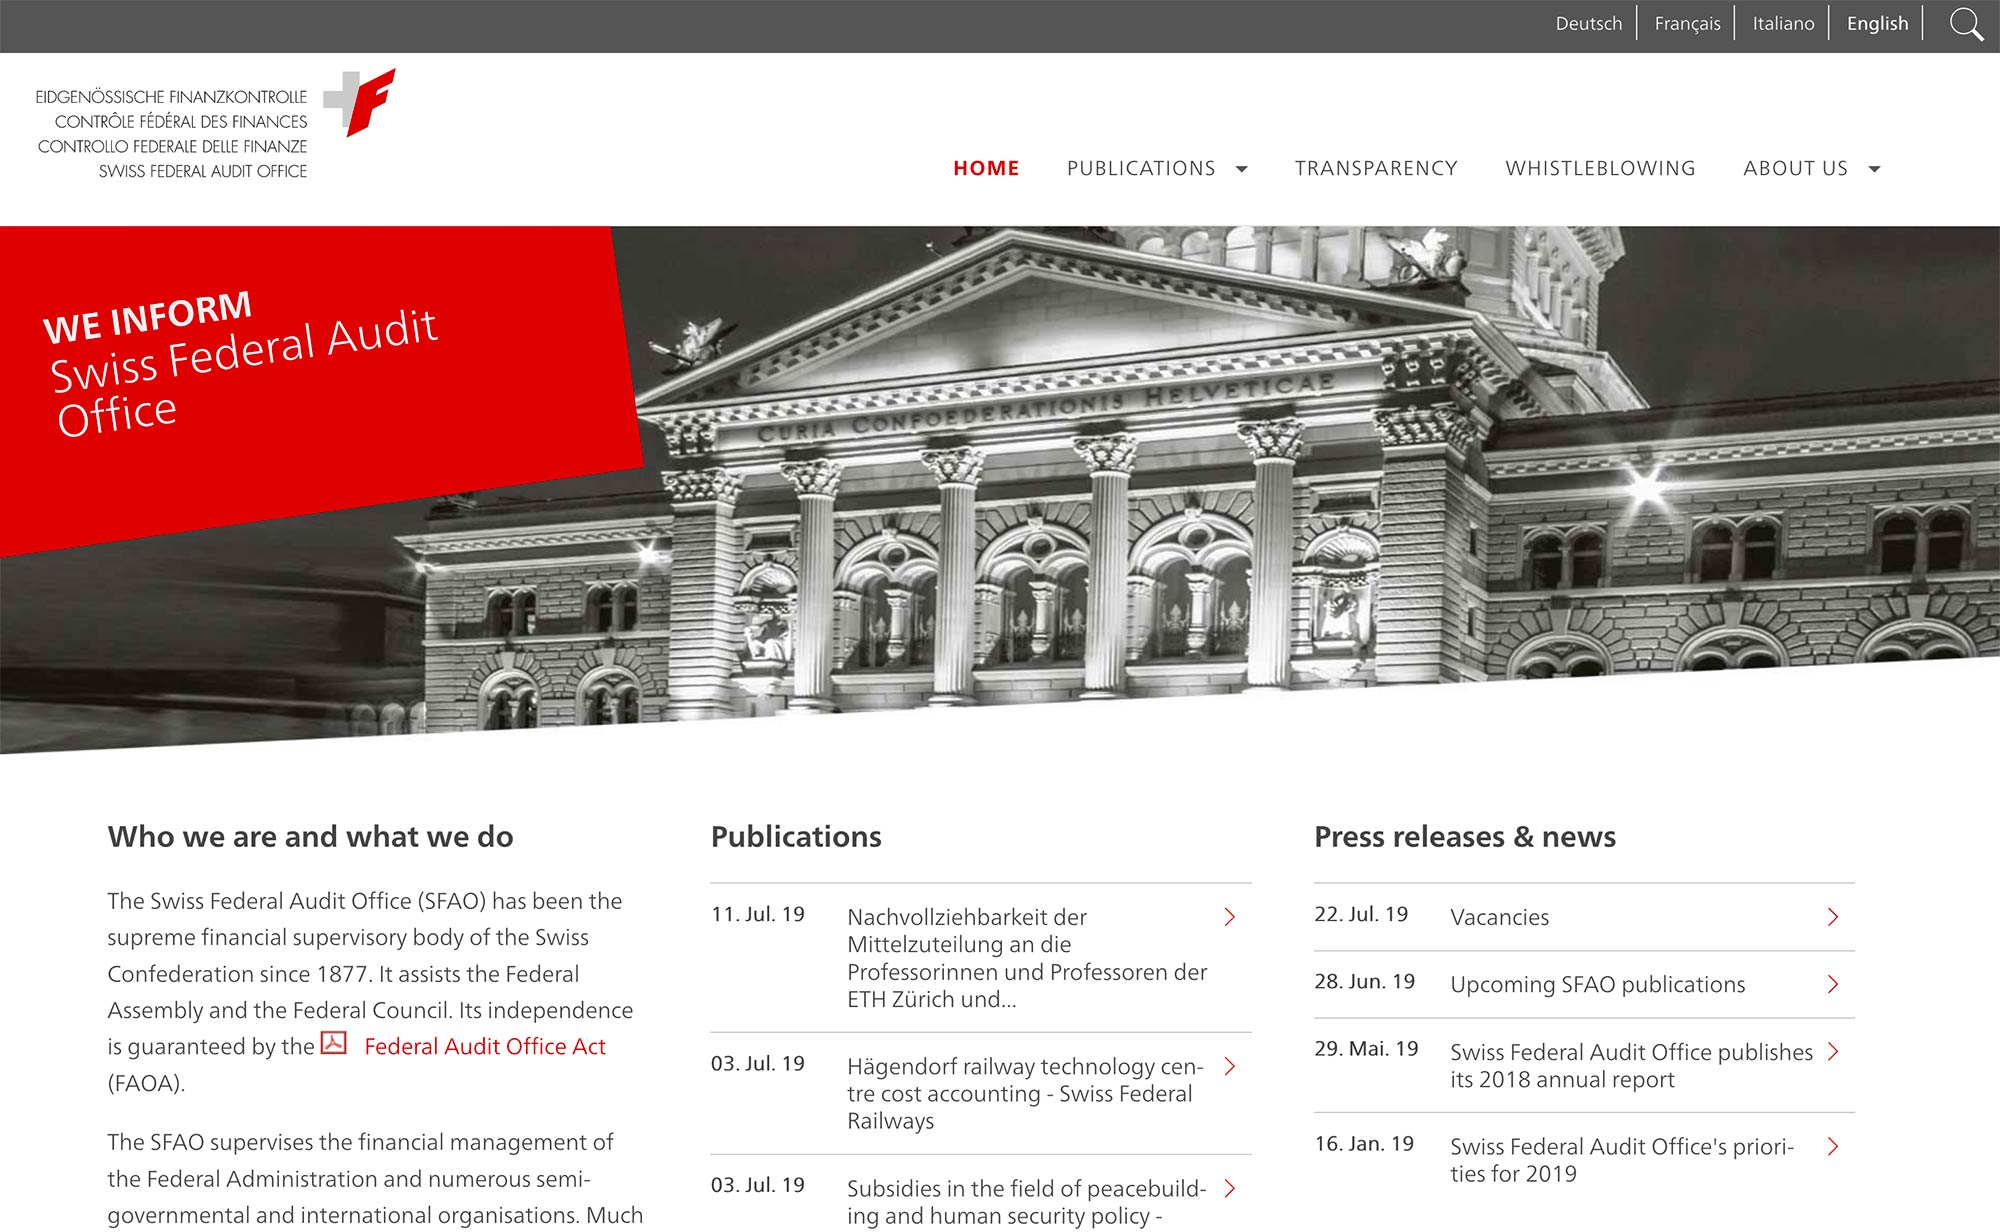 The Swiss Federal Audit Office